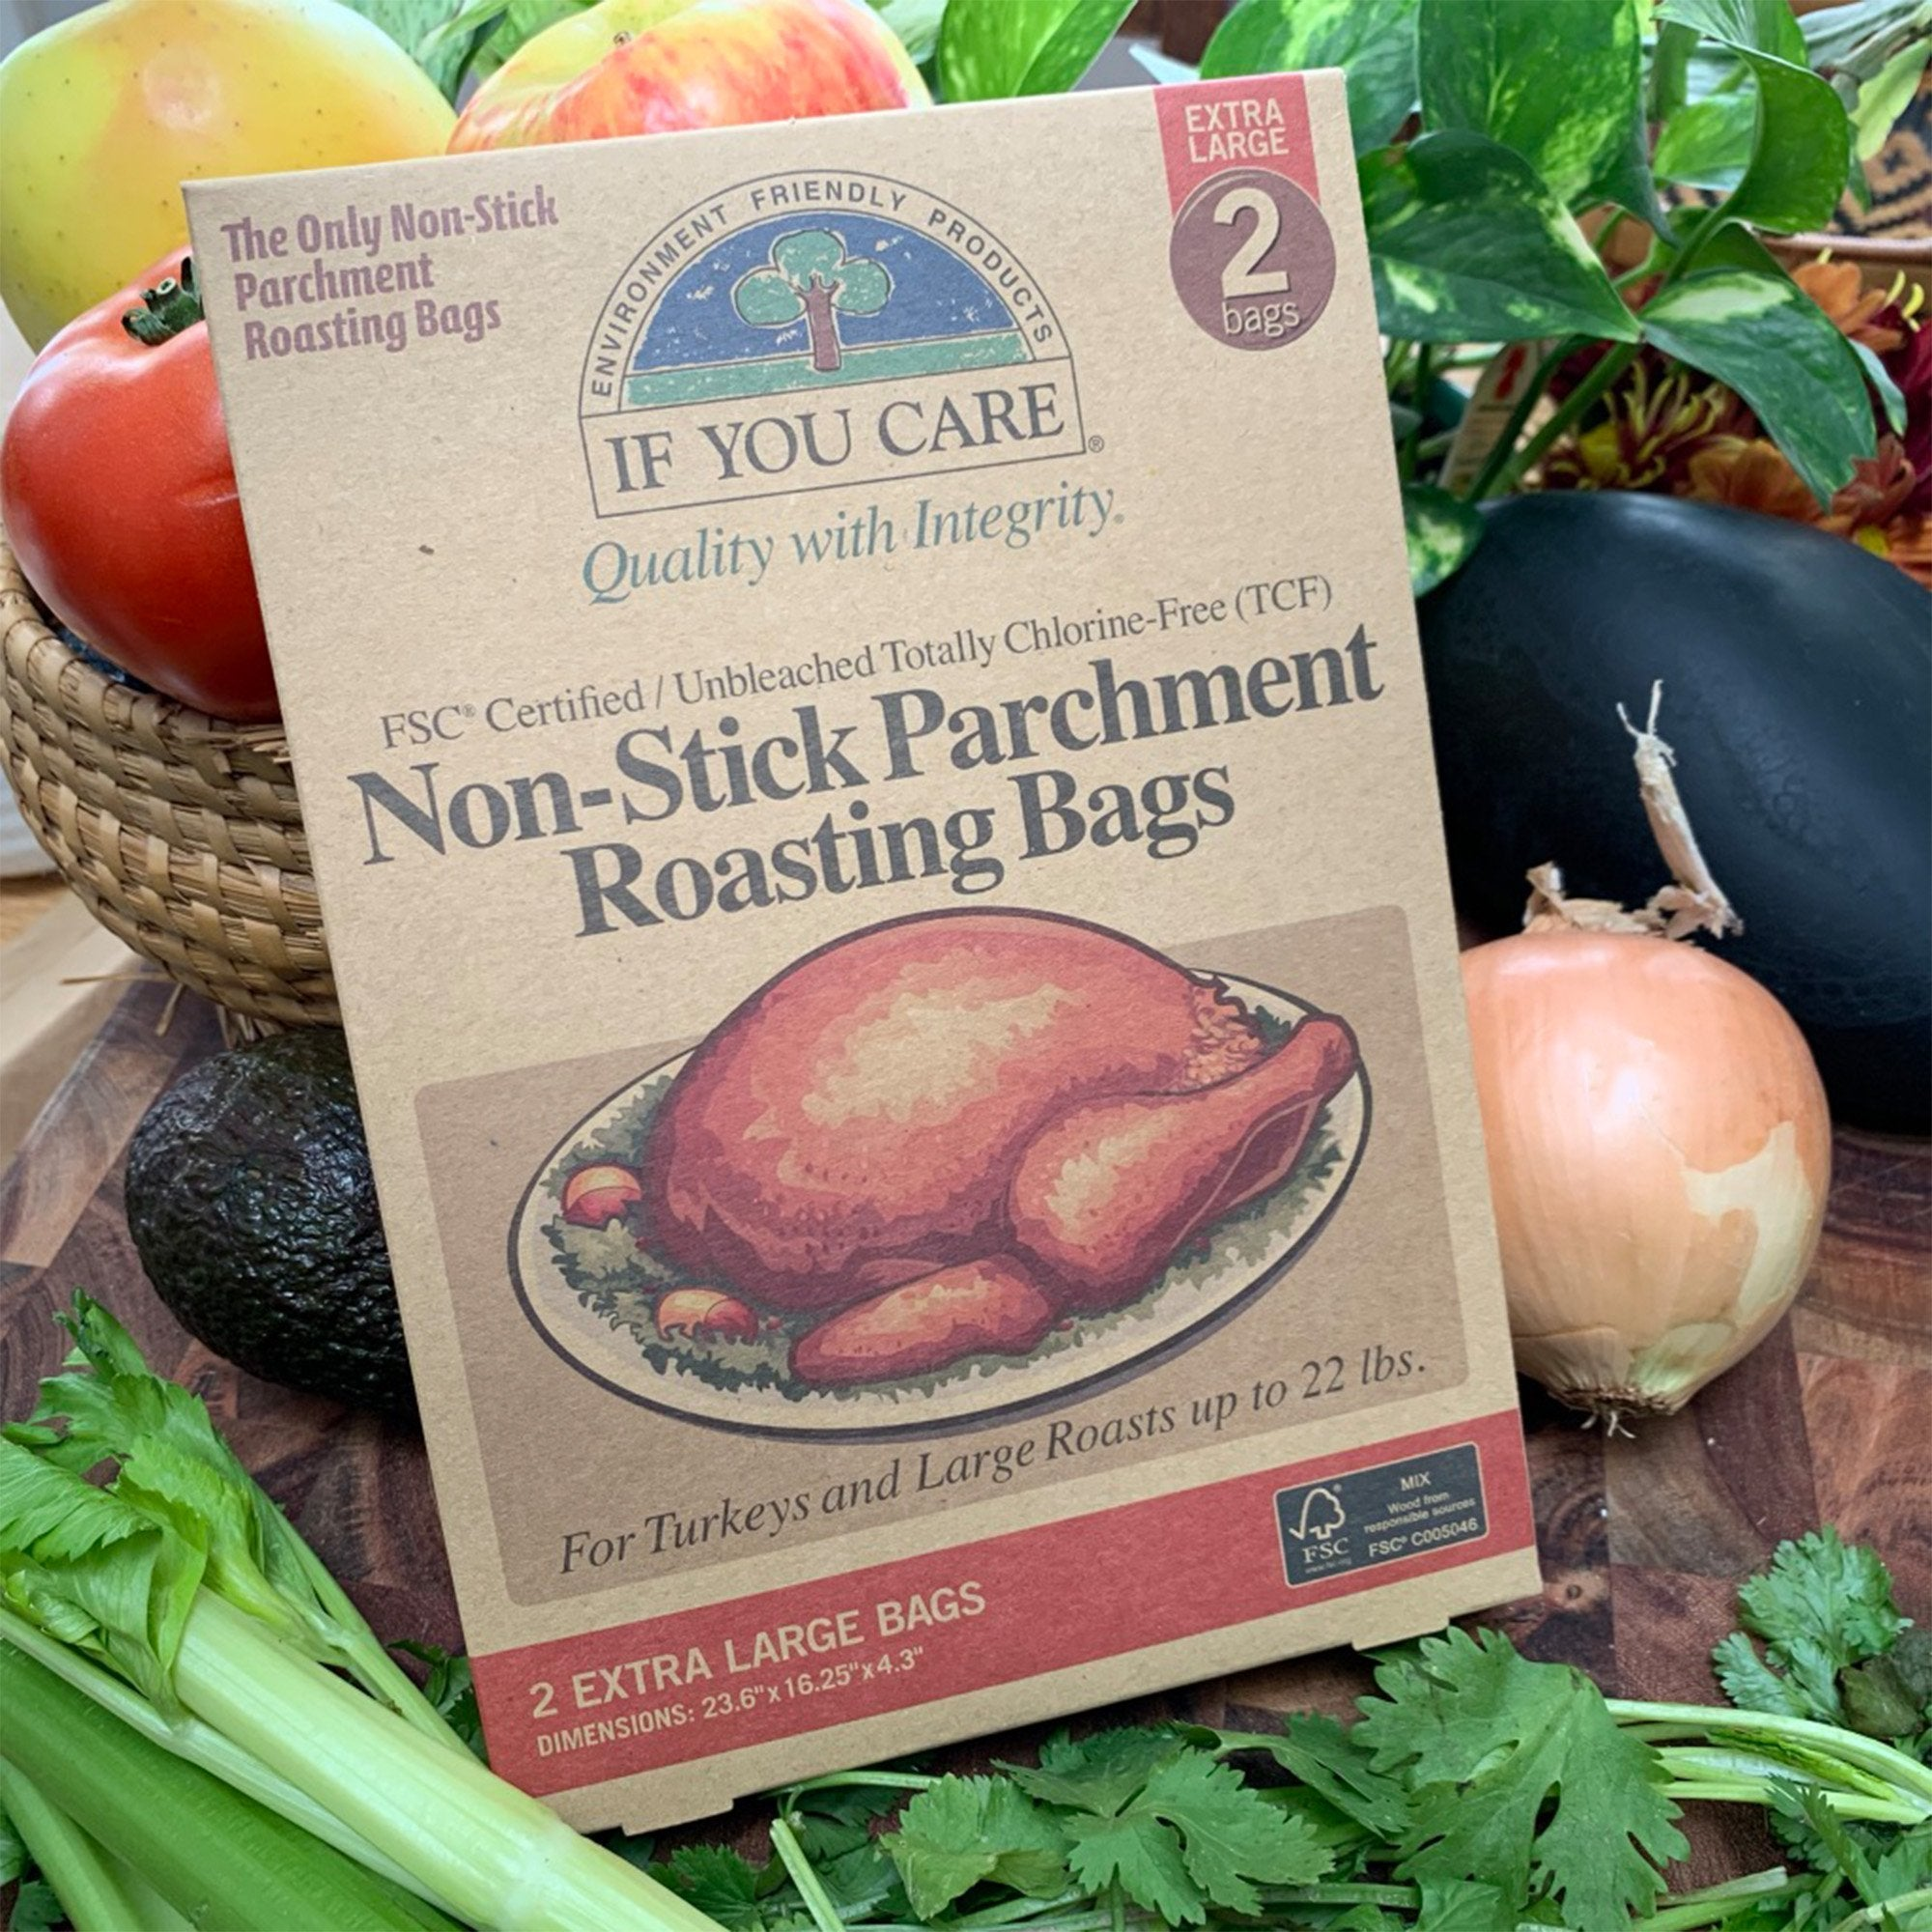 "non-stick parchment roasting bags in package. 2 extra large bags. bags are 23.6"" x 16.25"" x 4.3"" displayed on bed of vegetables"